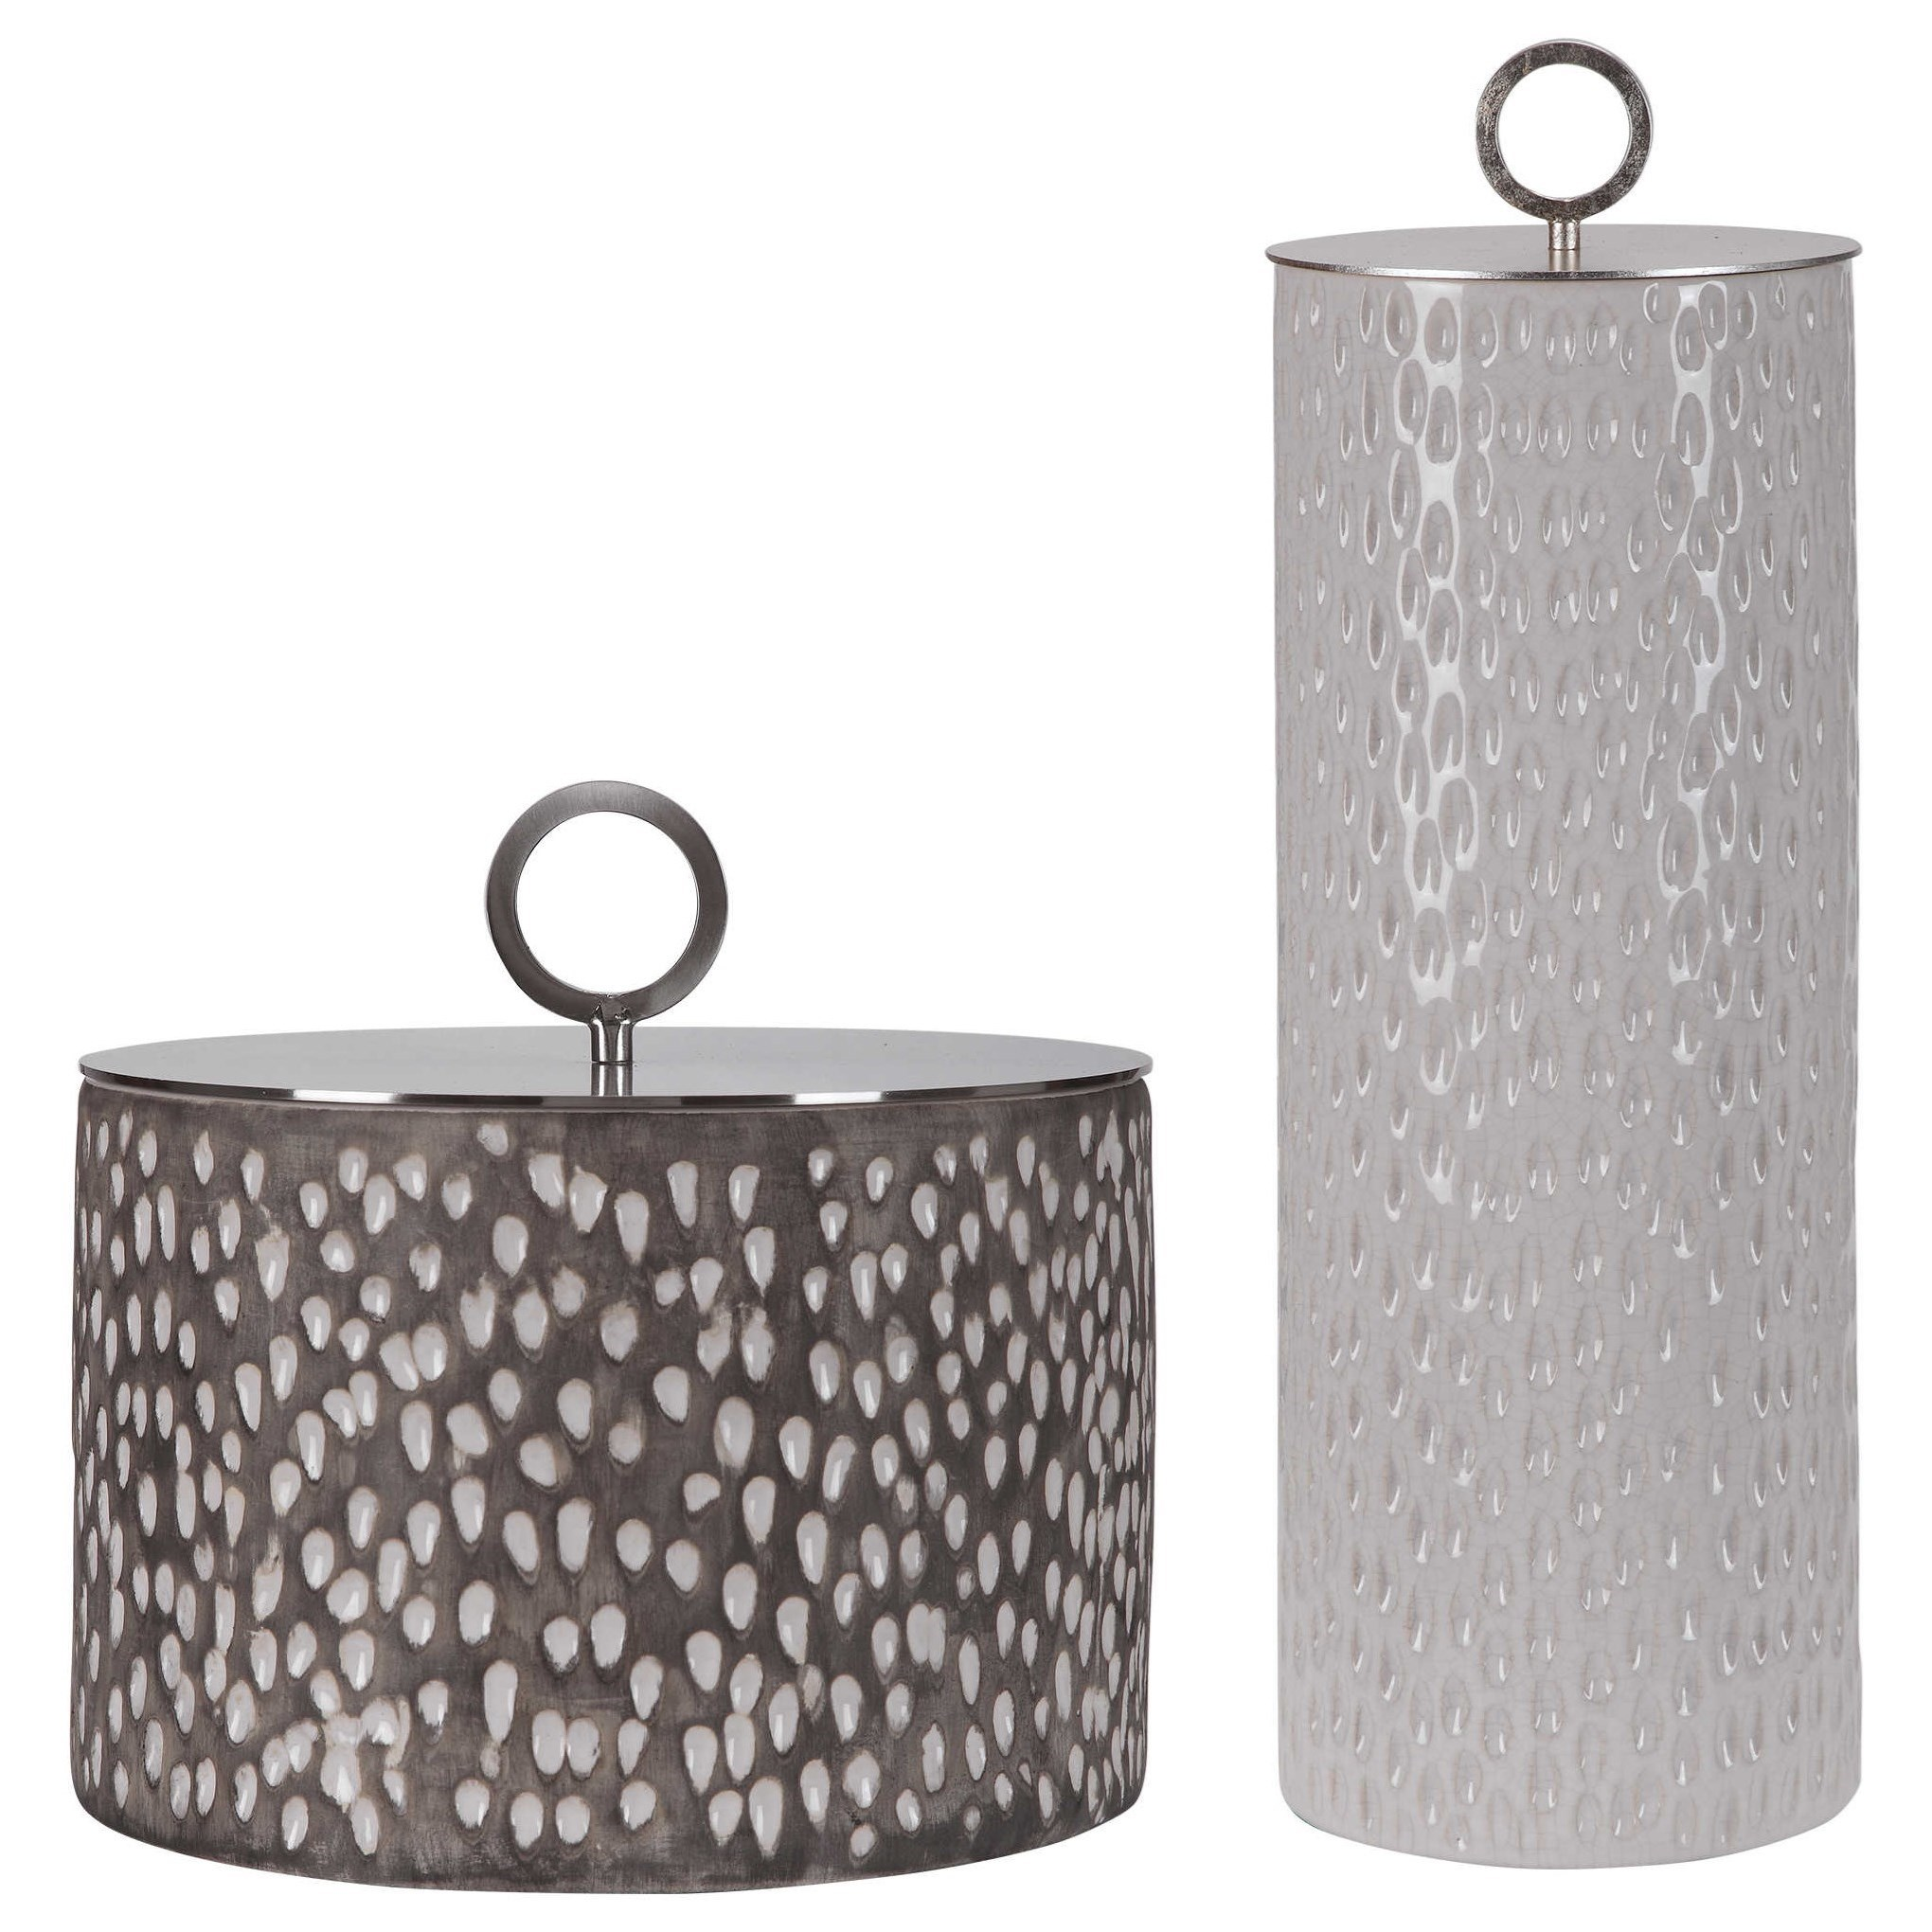 Accessories Cyprien Ceramic Containers, S/2 by Uttermost at Mueller Furniture